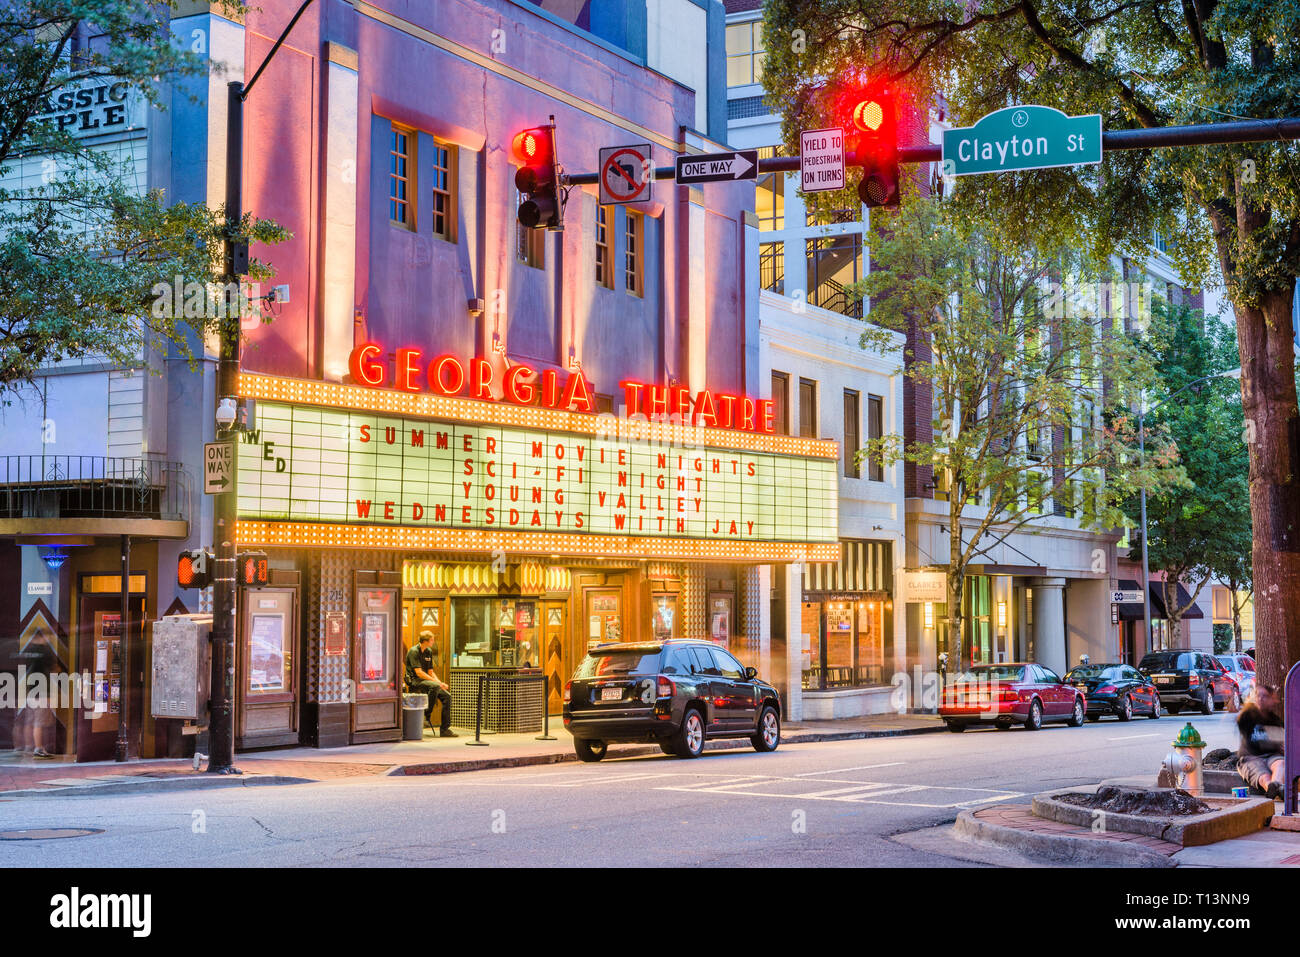 ATHENS, GEORGIA - AUGUST 3, 2017: The historic Georgia Theatre at dusk. The venue has featured many prominent acts from the prolific Athens music scen - Stock Image